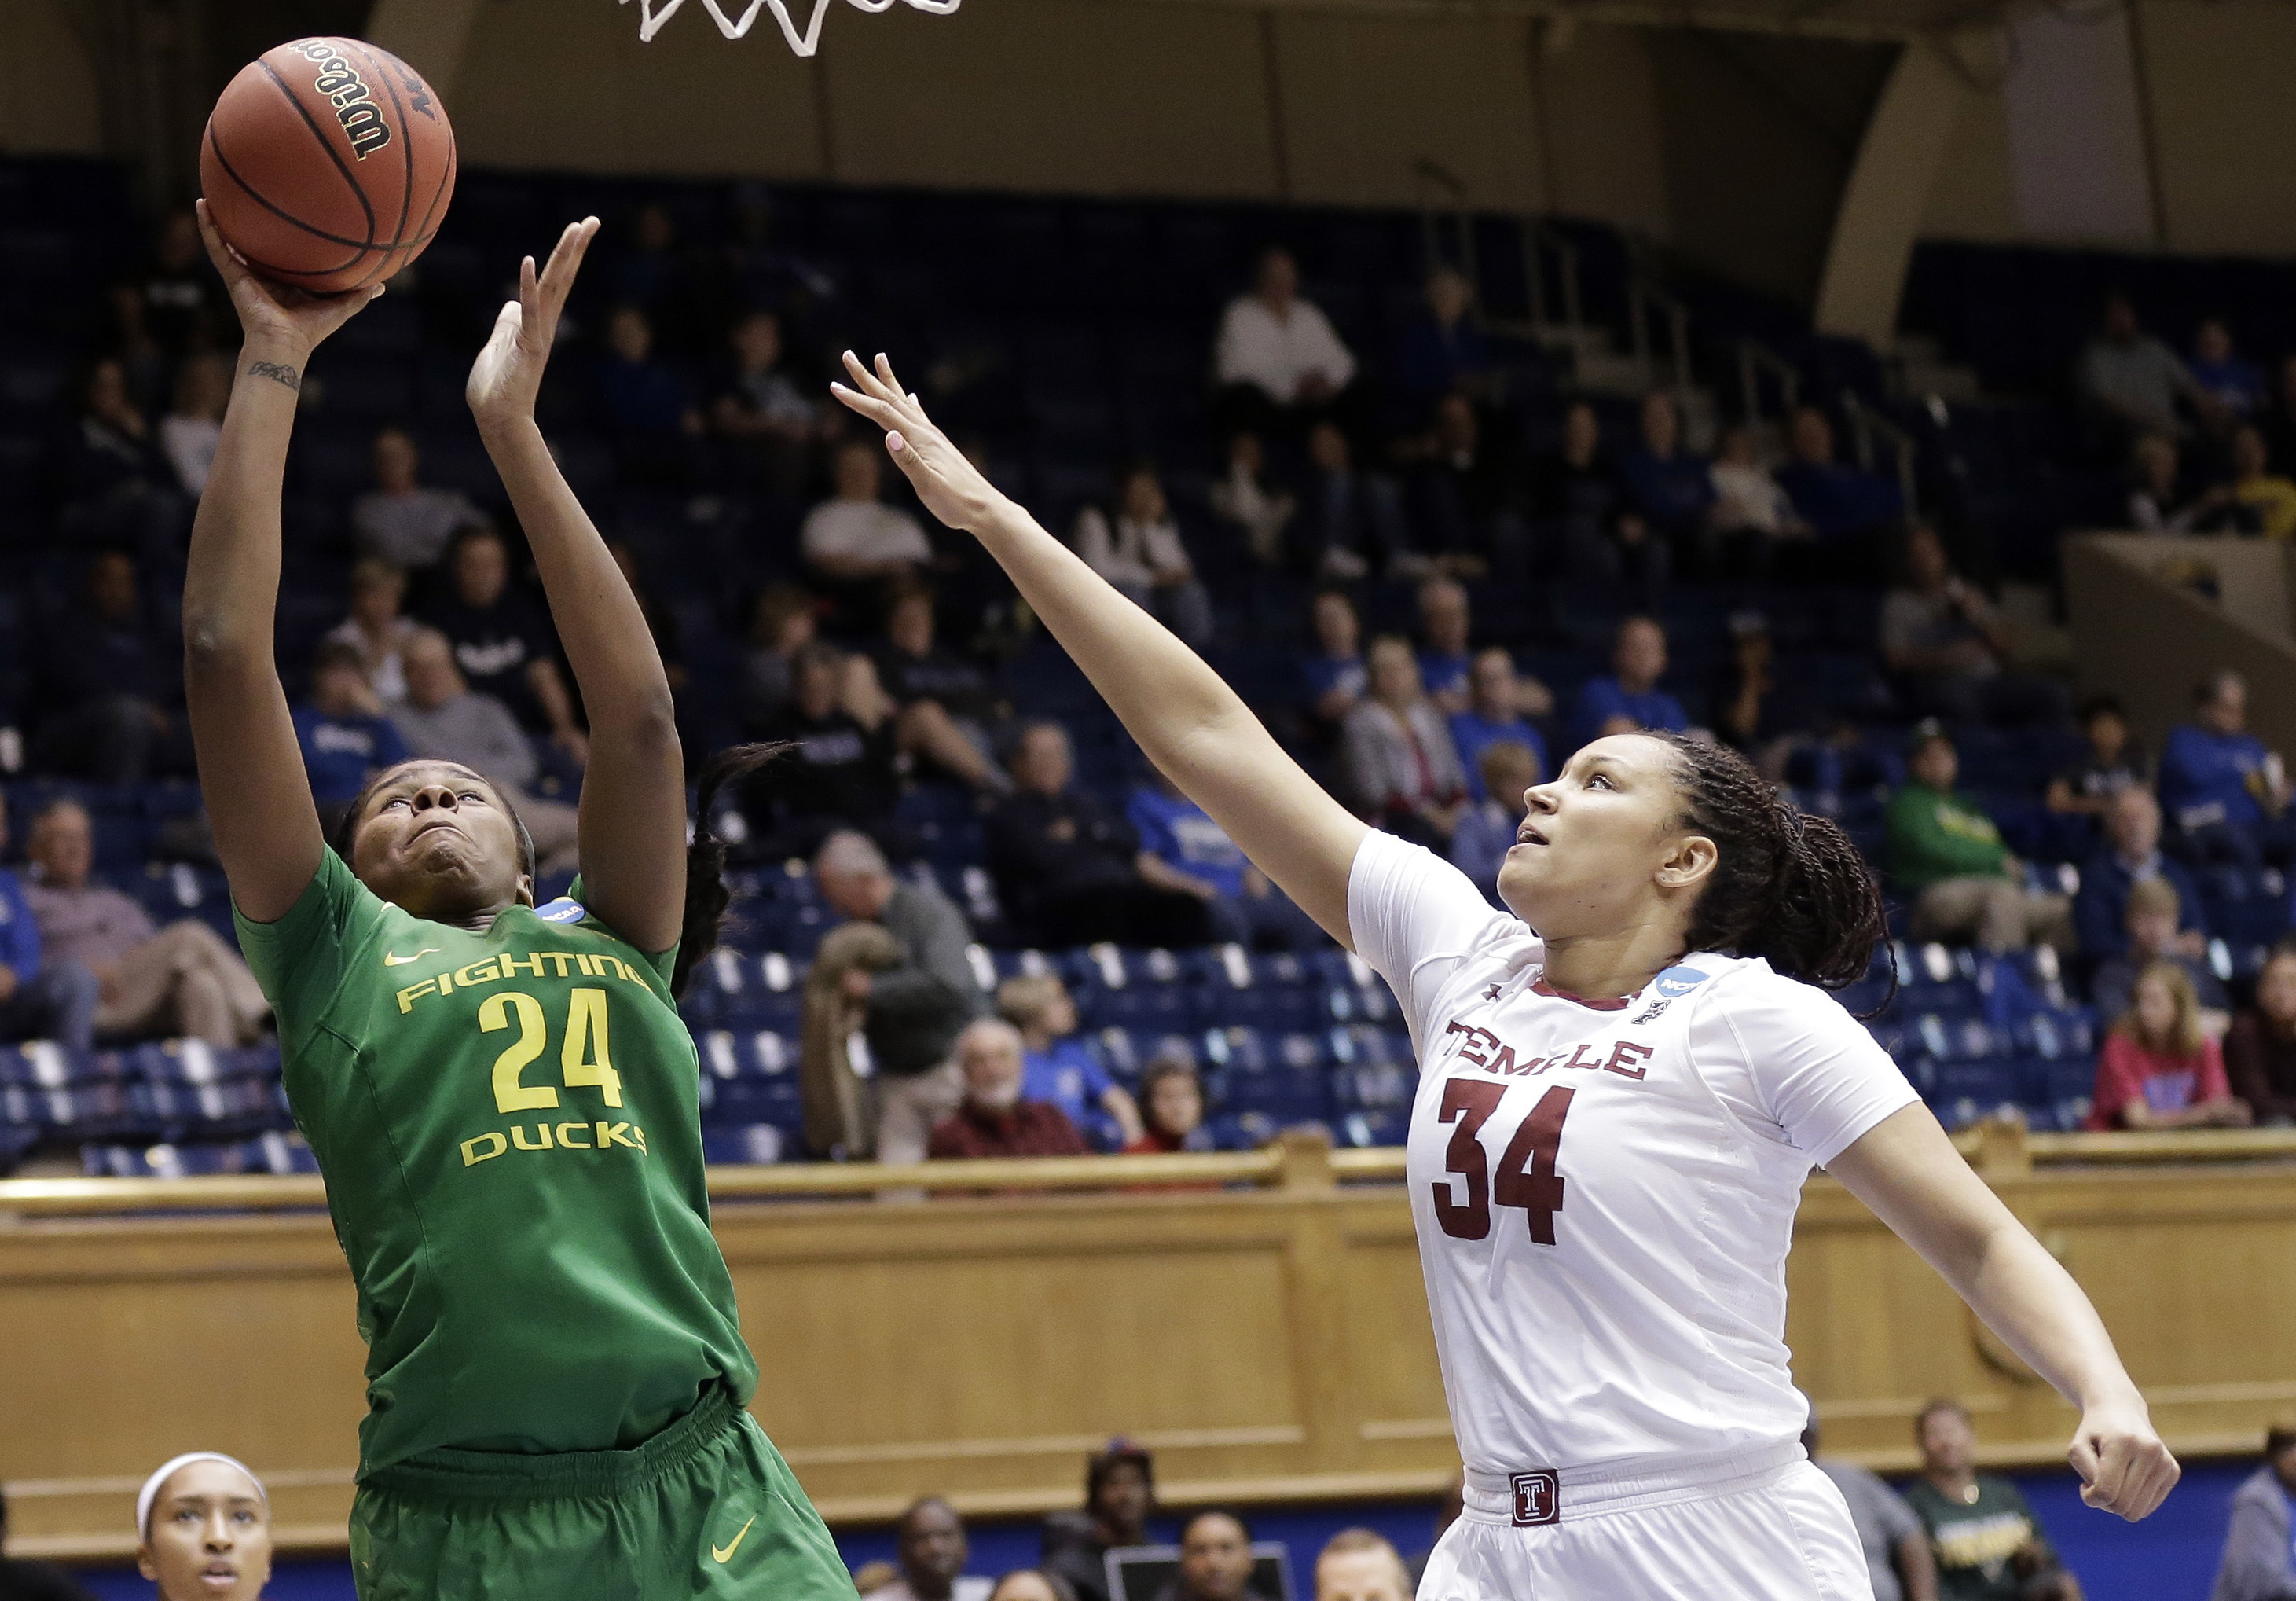 Oregon's Ruthy Hebard (24) shoots while Temple's Monasia Bolduc (34) defends during the first half of a first-round game in the NCAA women's college basketball tournament in Durham, N.C., Saturday, March 18, 2017.  (AP Photo/Gerry Broome)